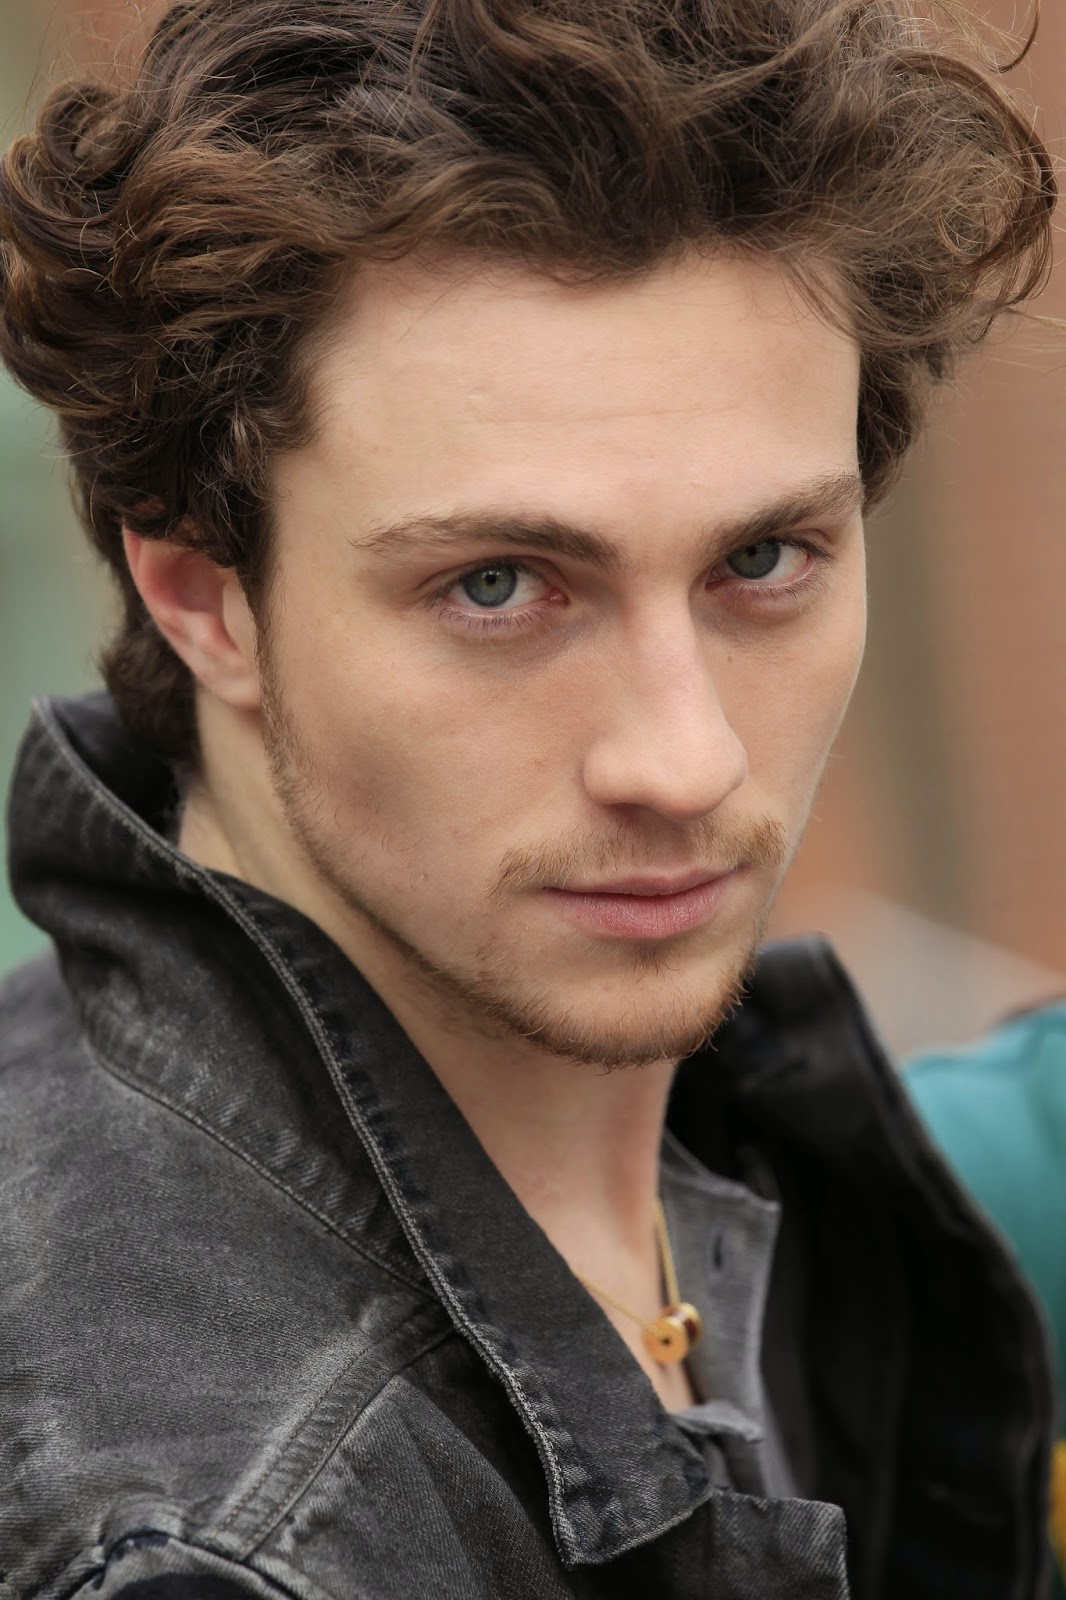 Aaron Taylor Johnson Wallpapers High Quality Download 1066x1600